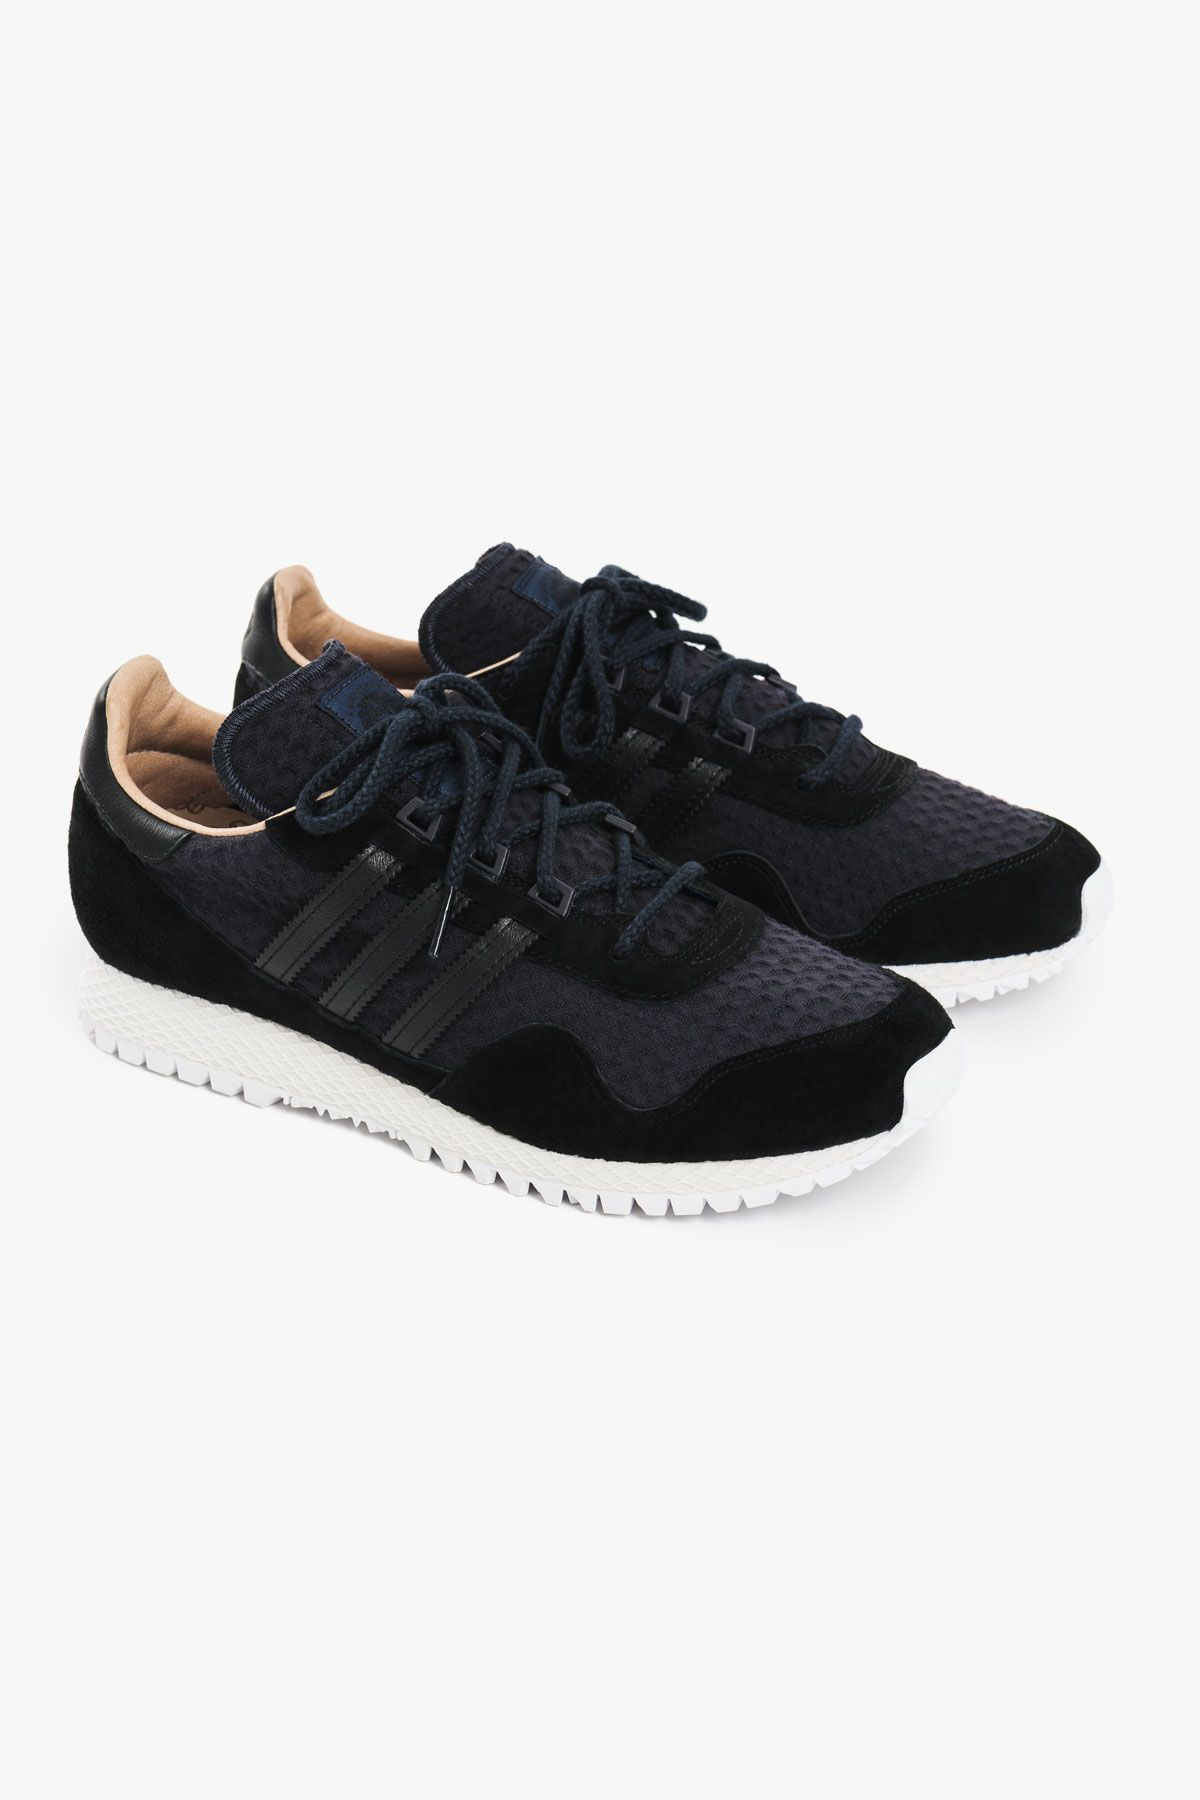 c55748d68 AKOG × adidas New York – A Kind of Guise | Kicks for Jimmy ...